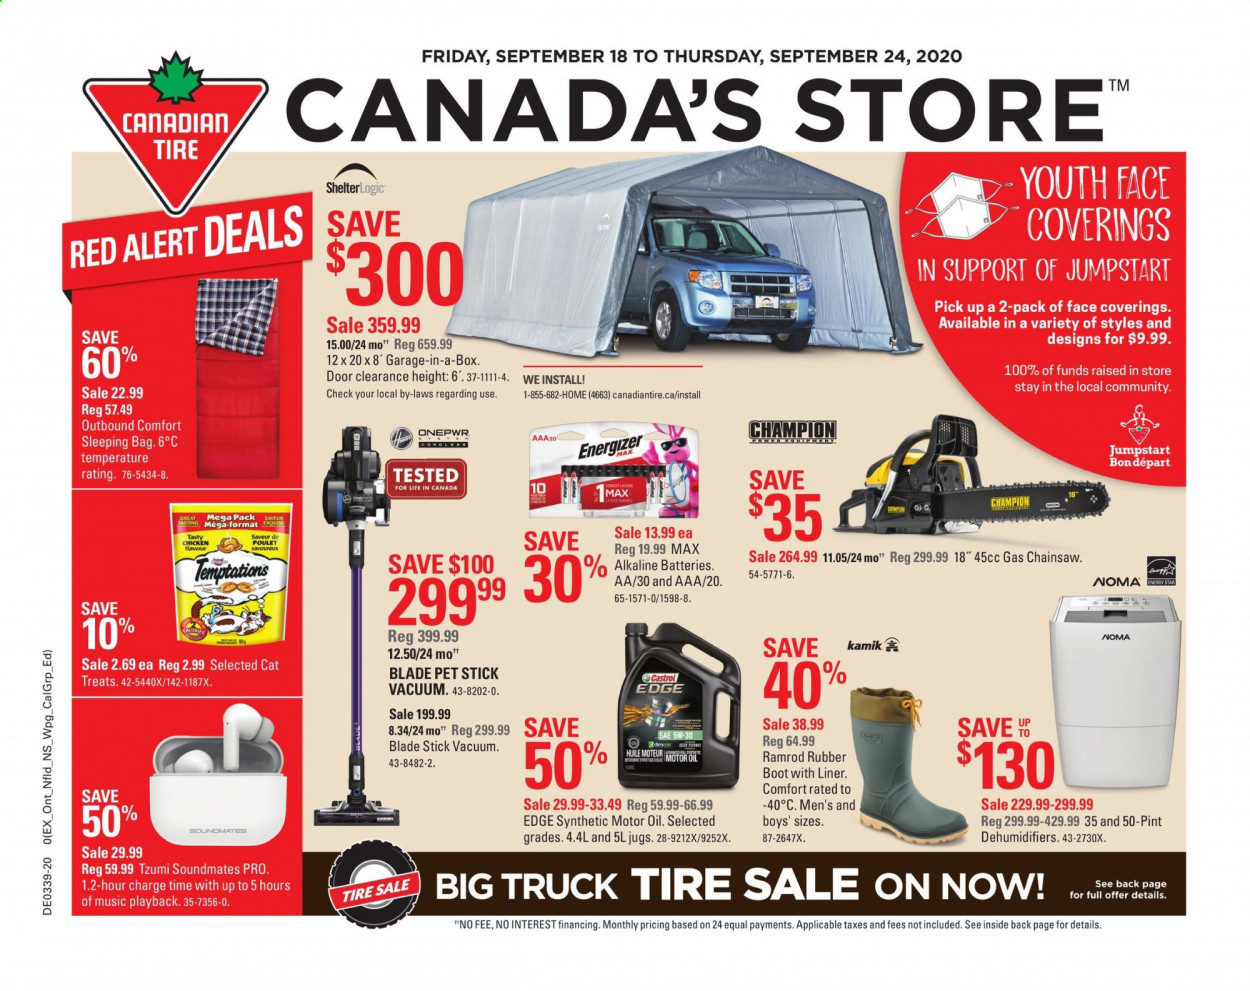 Canadian Tire Flyer - September 18, 2020 - September 24, 2020 - Sales products - bag, battery, door, energizer, motor oil, sleeping bag, truck, vacuum, champion, pet, chicken, poulet, huile, mot, aaa, alert, rubber, box, blade, treats, doors. Page 1.